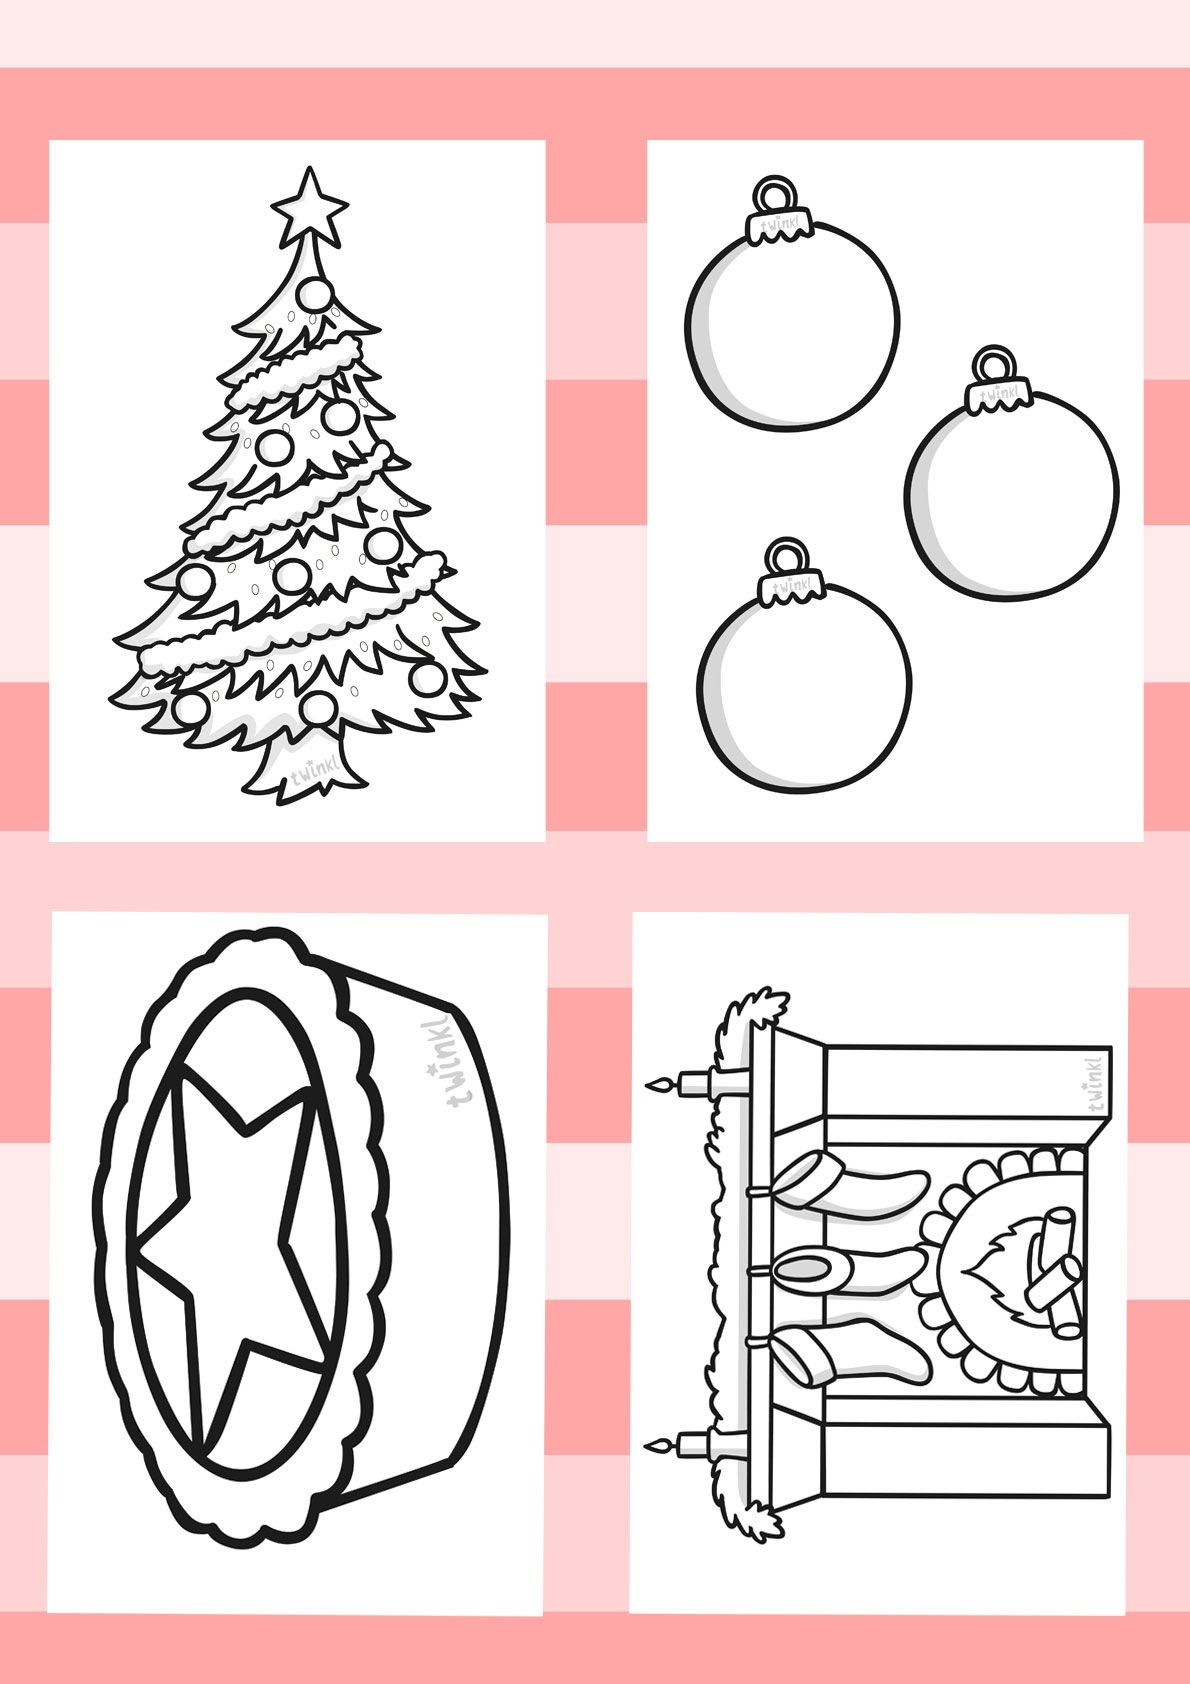 twinkl resources christmas colouring sheets printable resources for primary eyfs ks1 and sen thousands of classroom displays and teaching aids